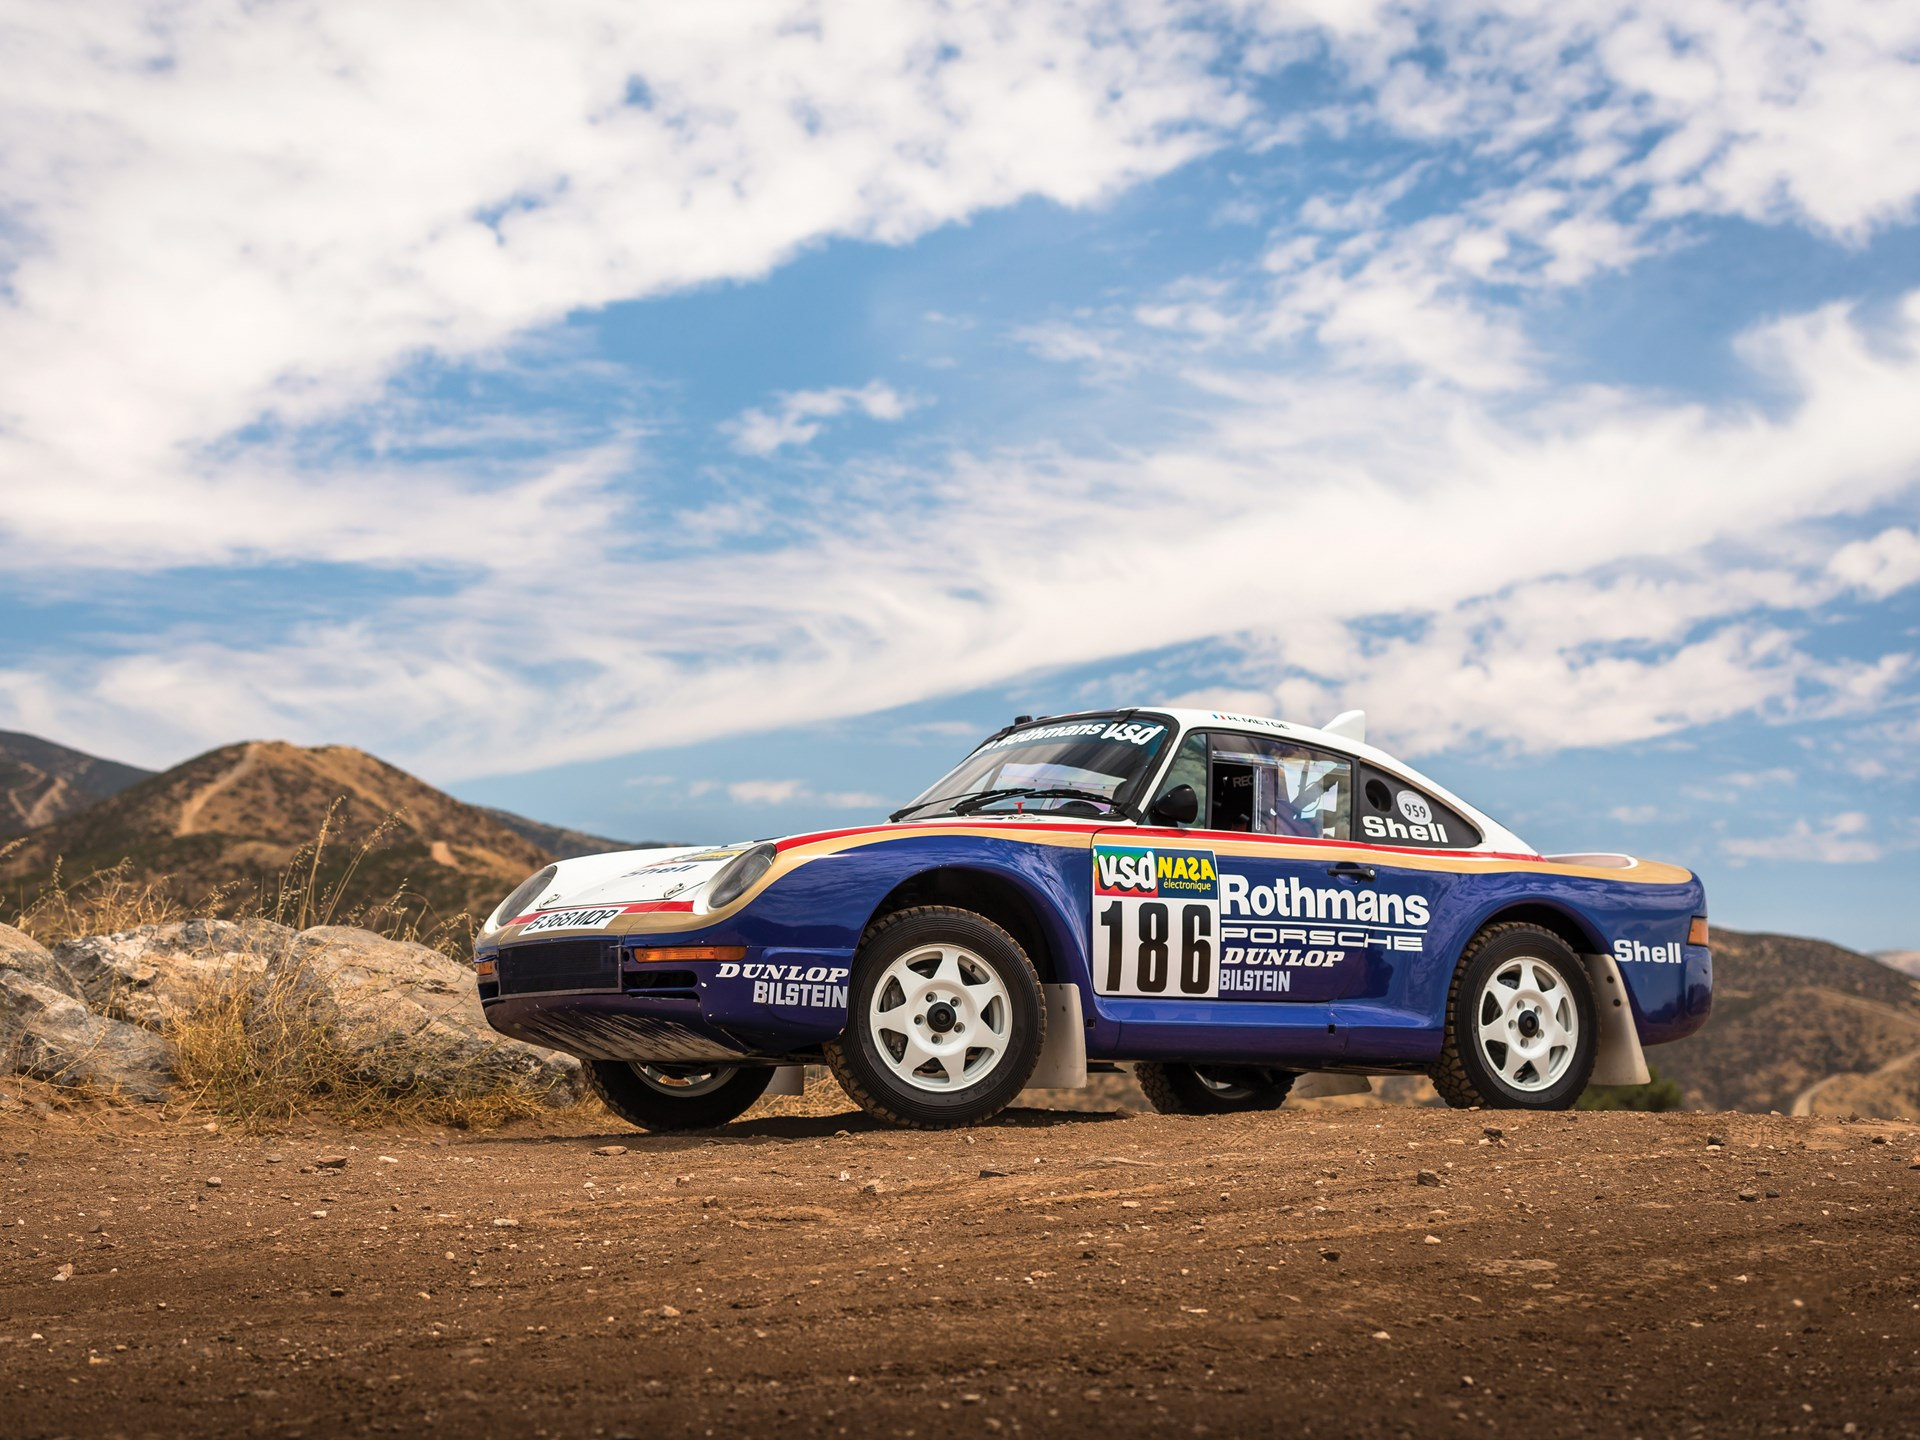 1985 Porsche 959 Paris-Dakar Rally Car 3/4 front dirt